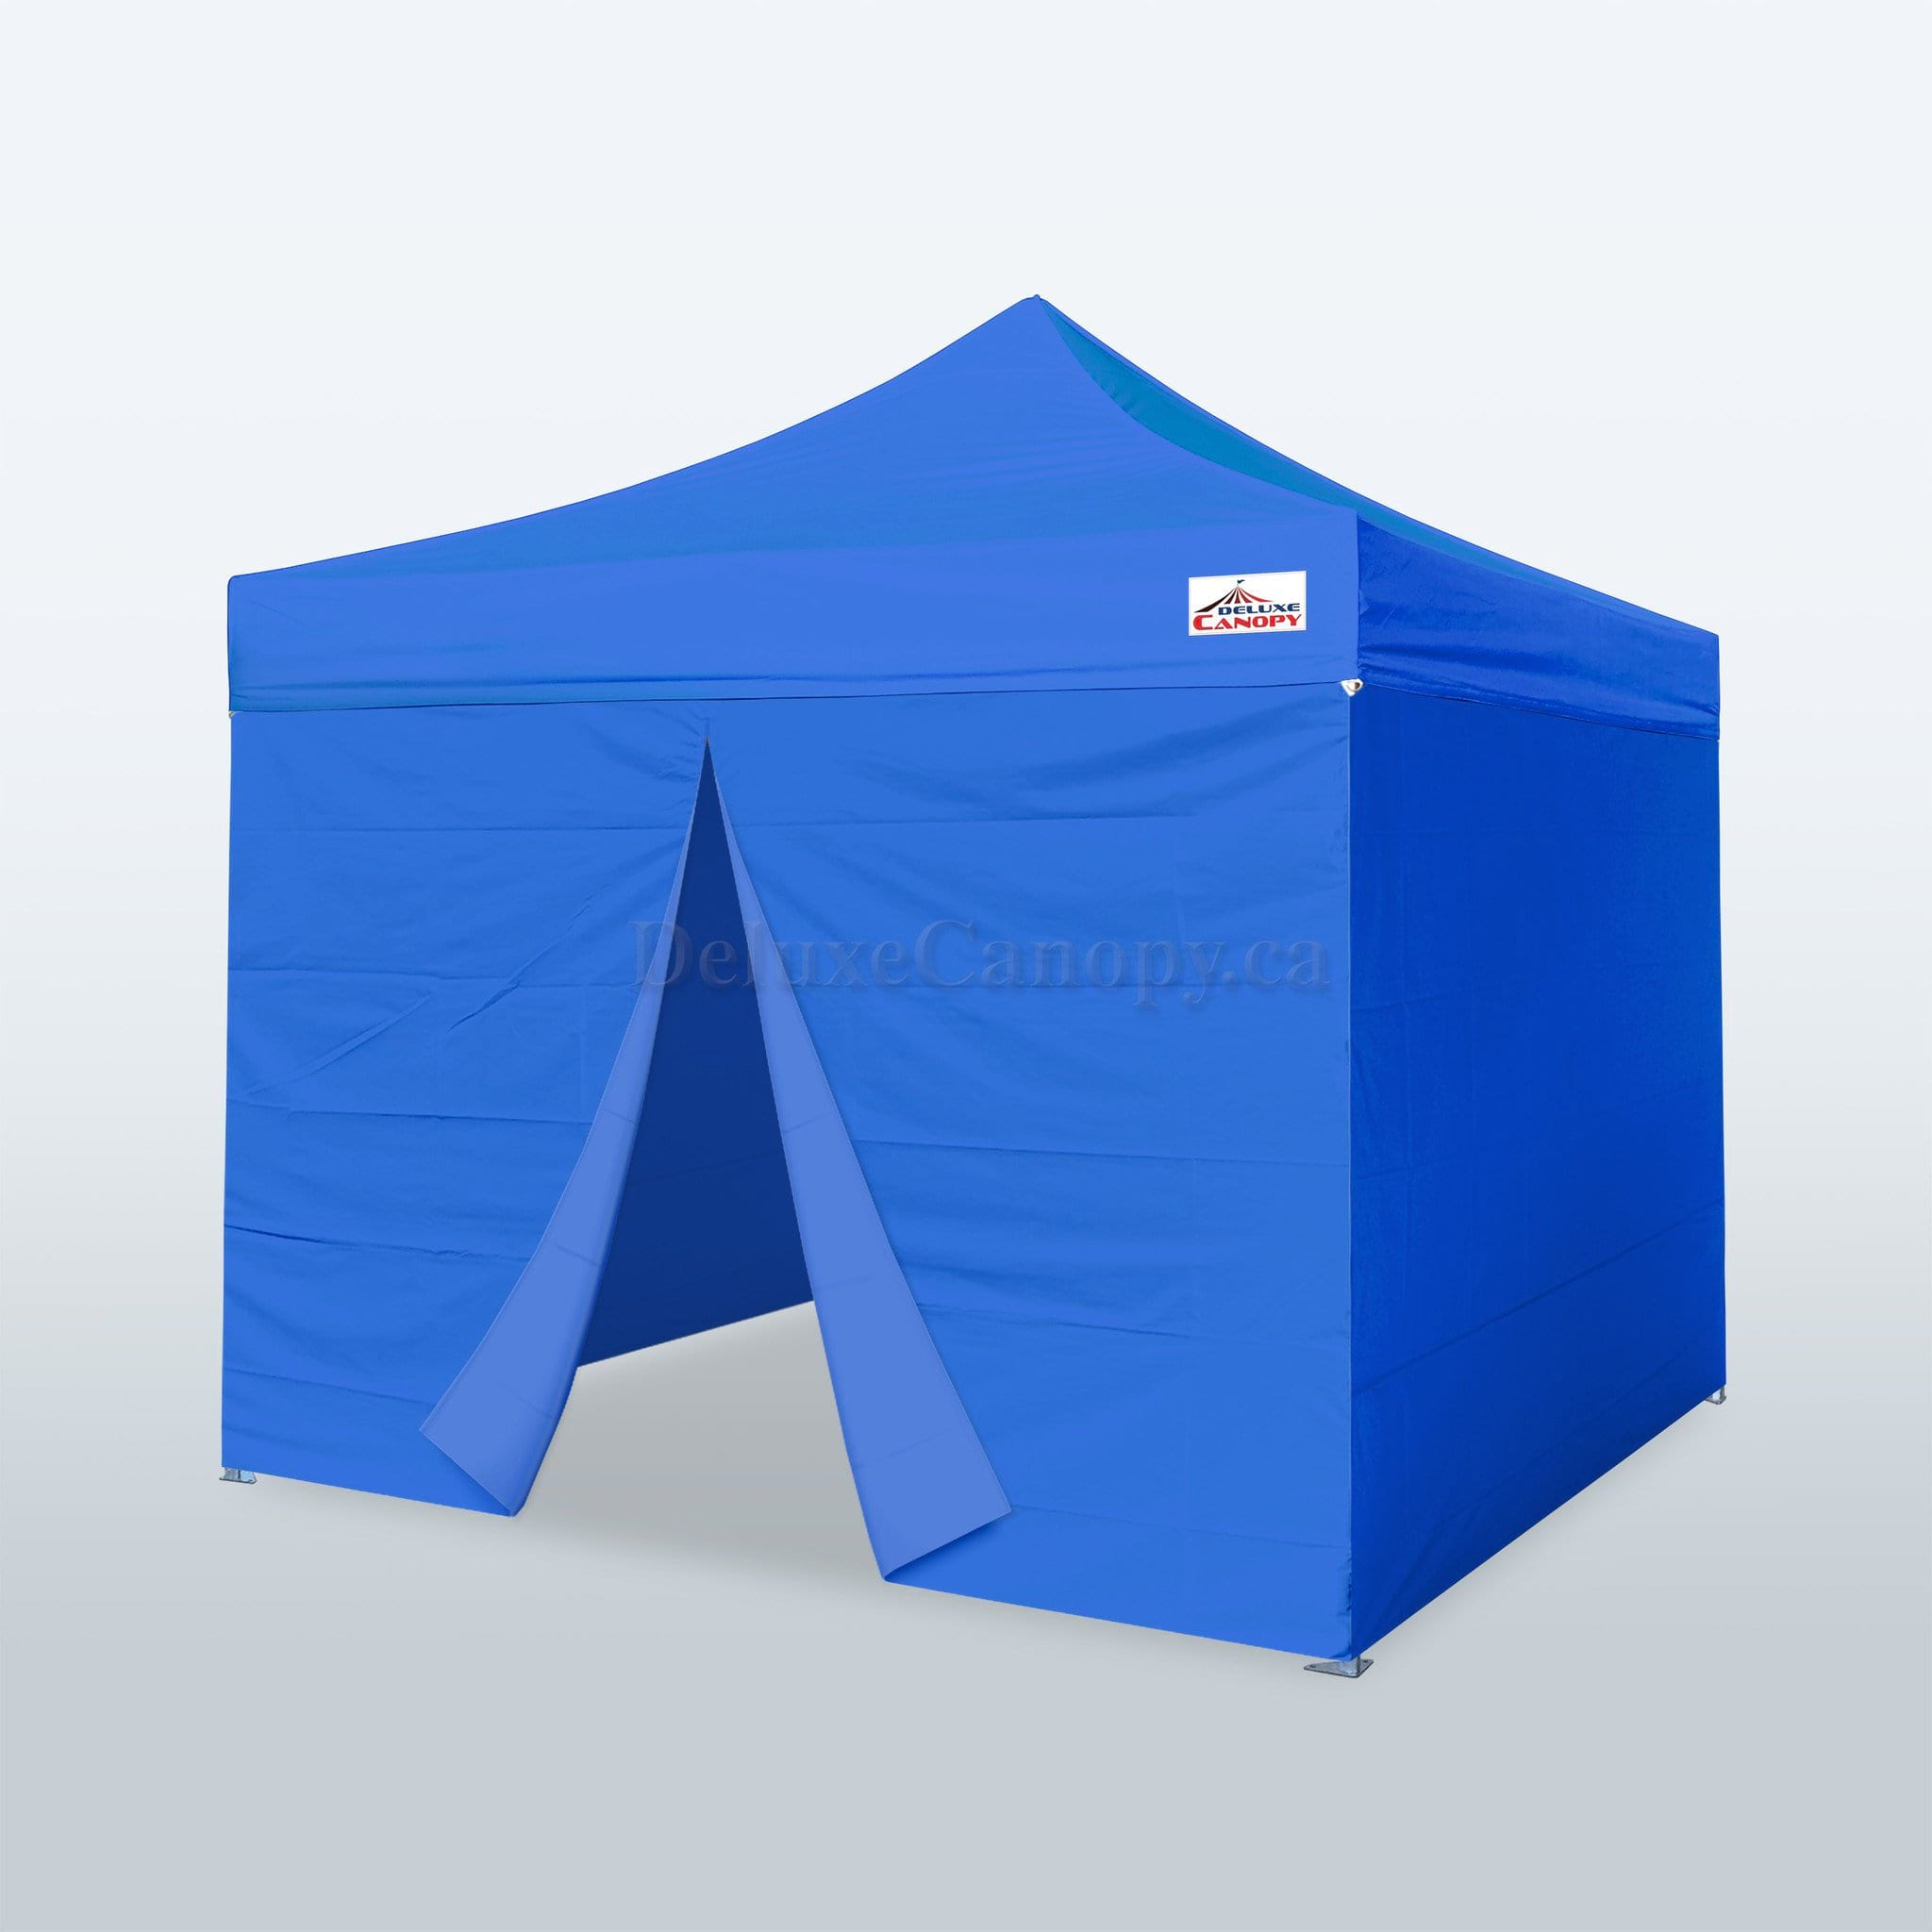 & 10x10 Pop Up Canopy Tent | ProShade Gazebo Tent Walls - Deluxe Canopy